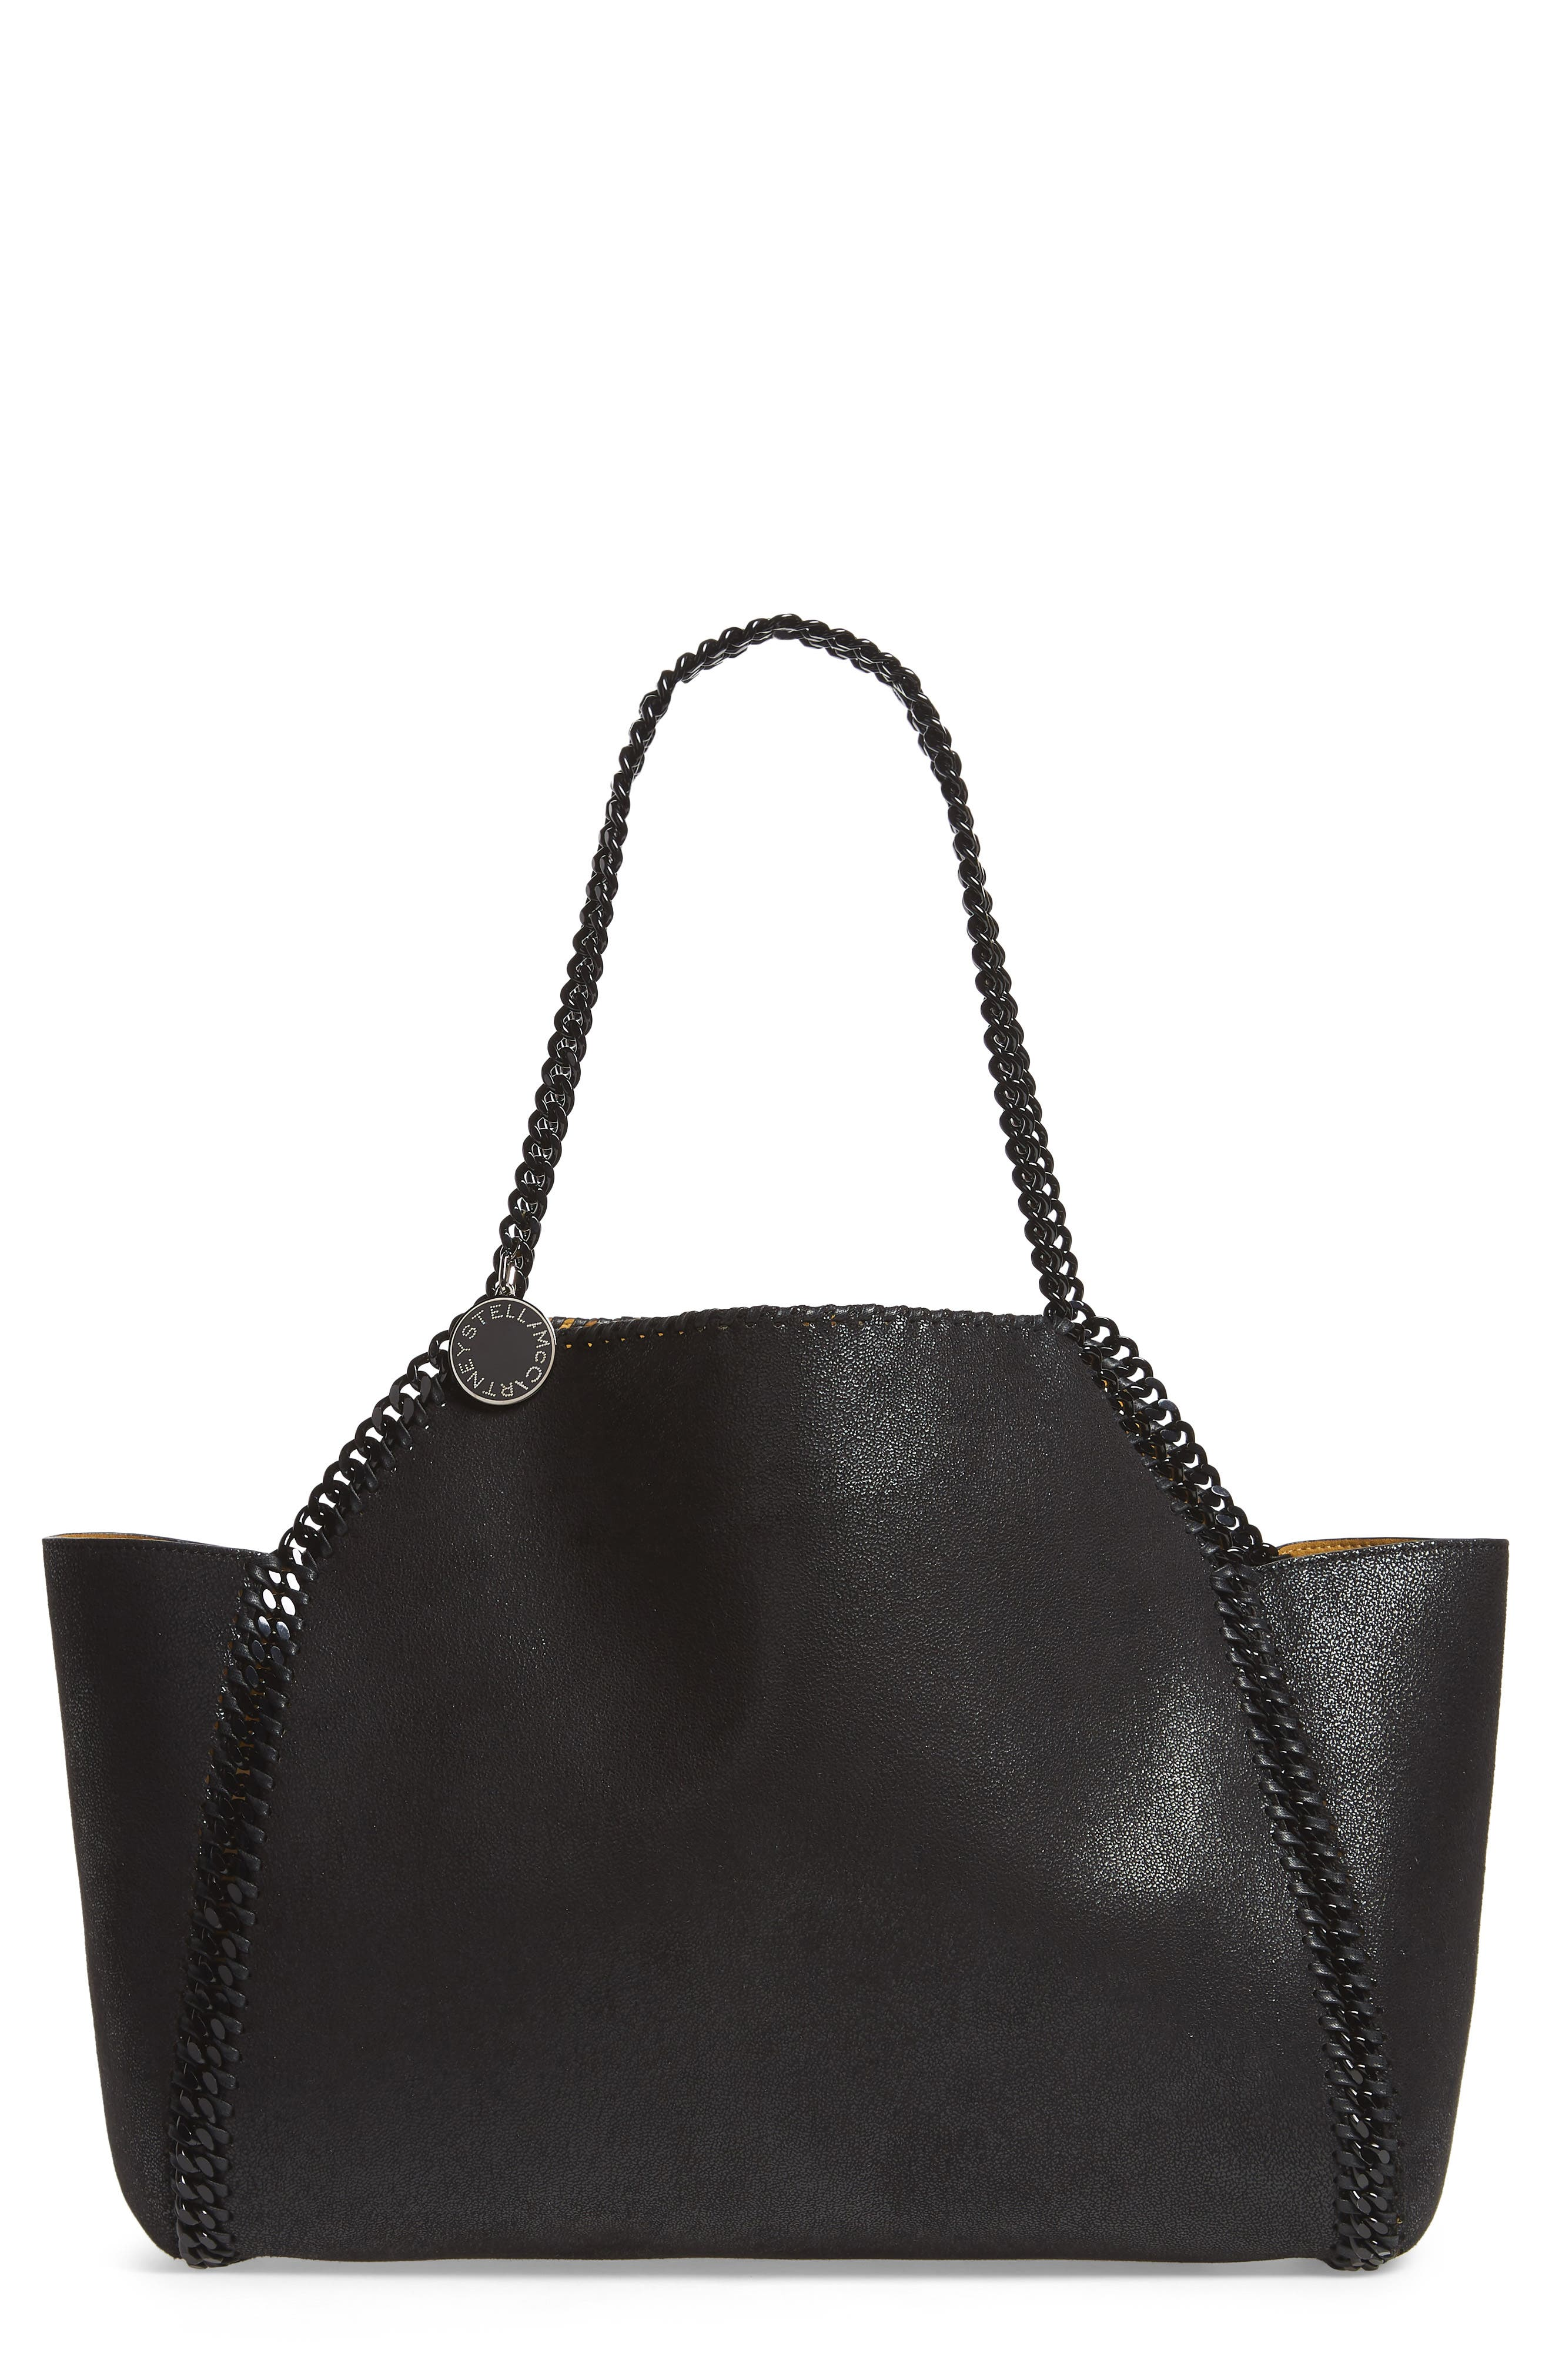 Stella Mccartney Falabella Small Reversible Faux Leather Tote - Black